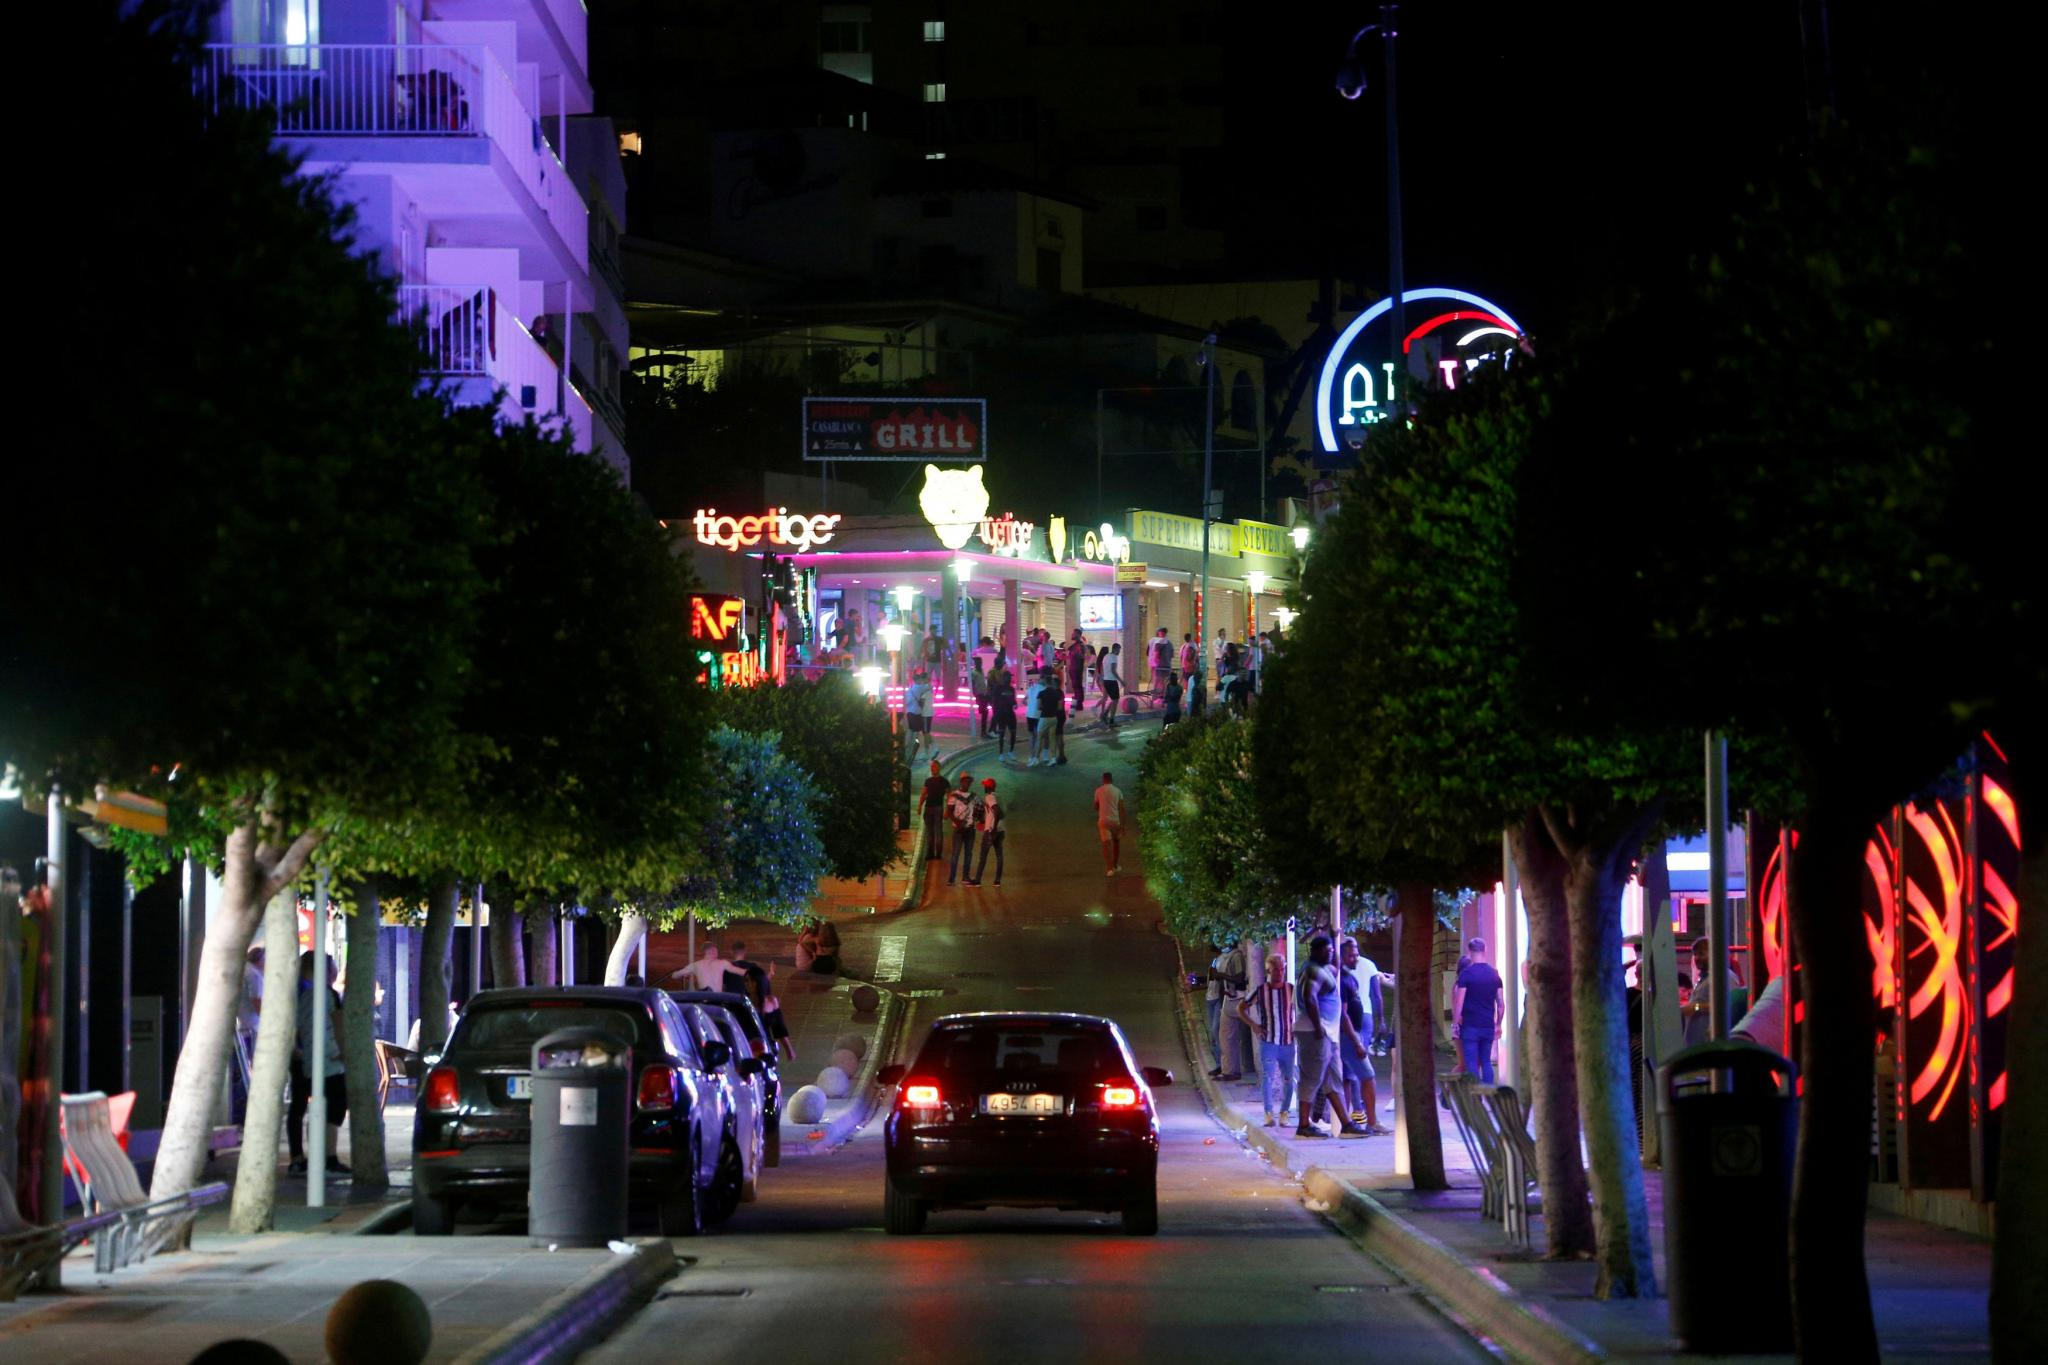 FILE PHOTO: A general view of Punta Ballena street in Magaluf